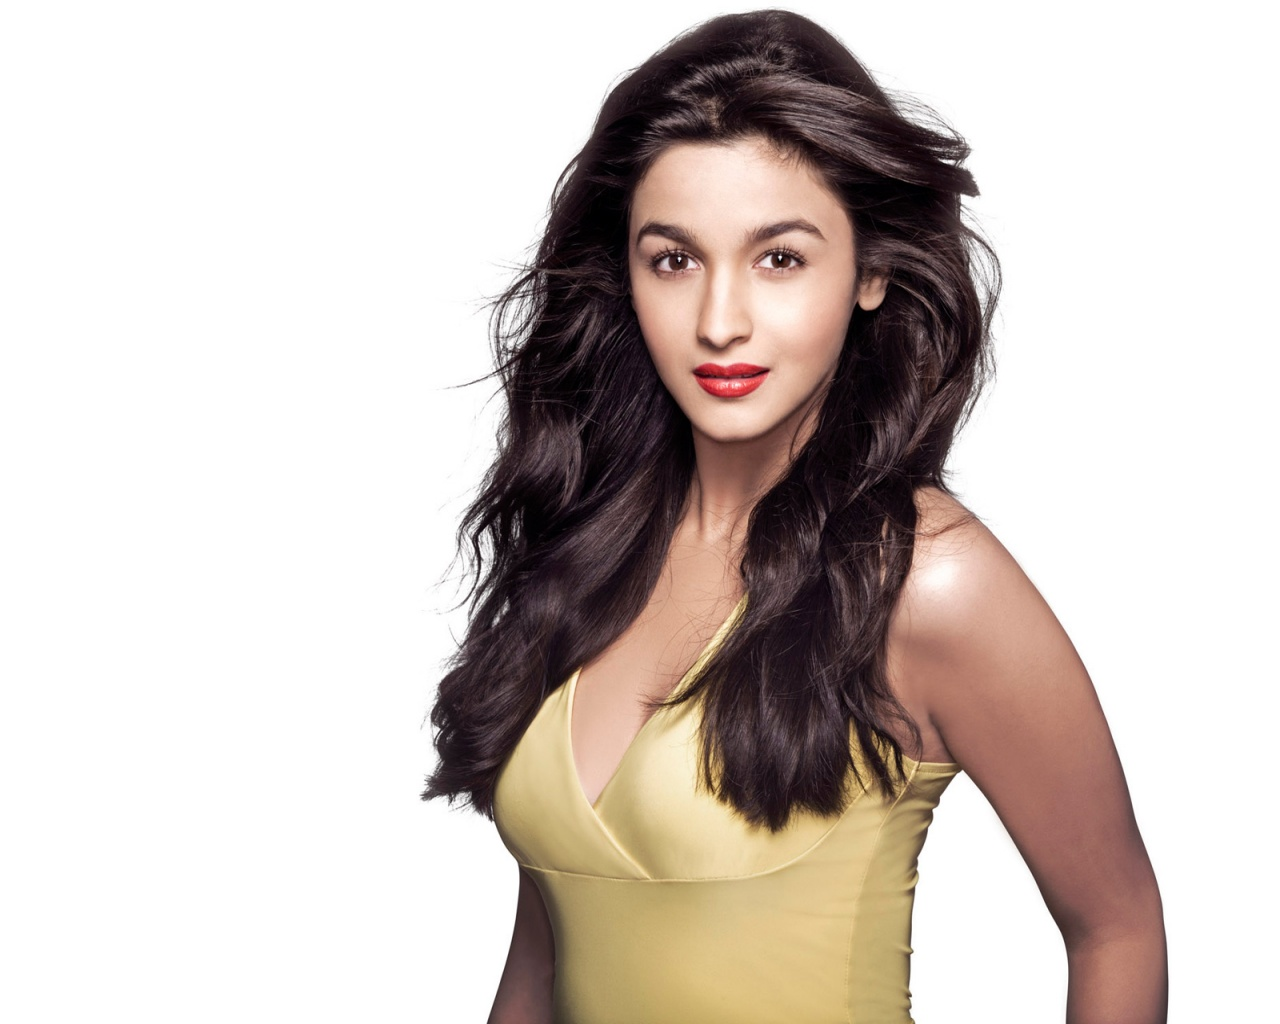 bollywood actress alia bhatt wallpapers in jpg format for free download